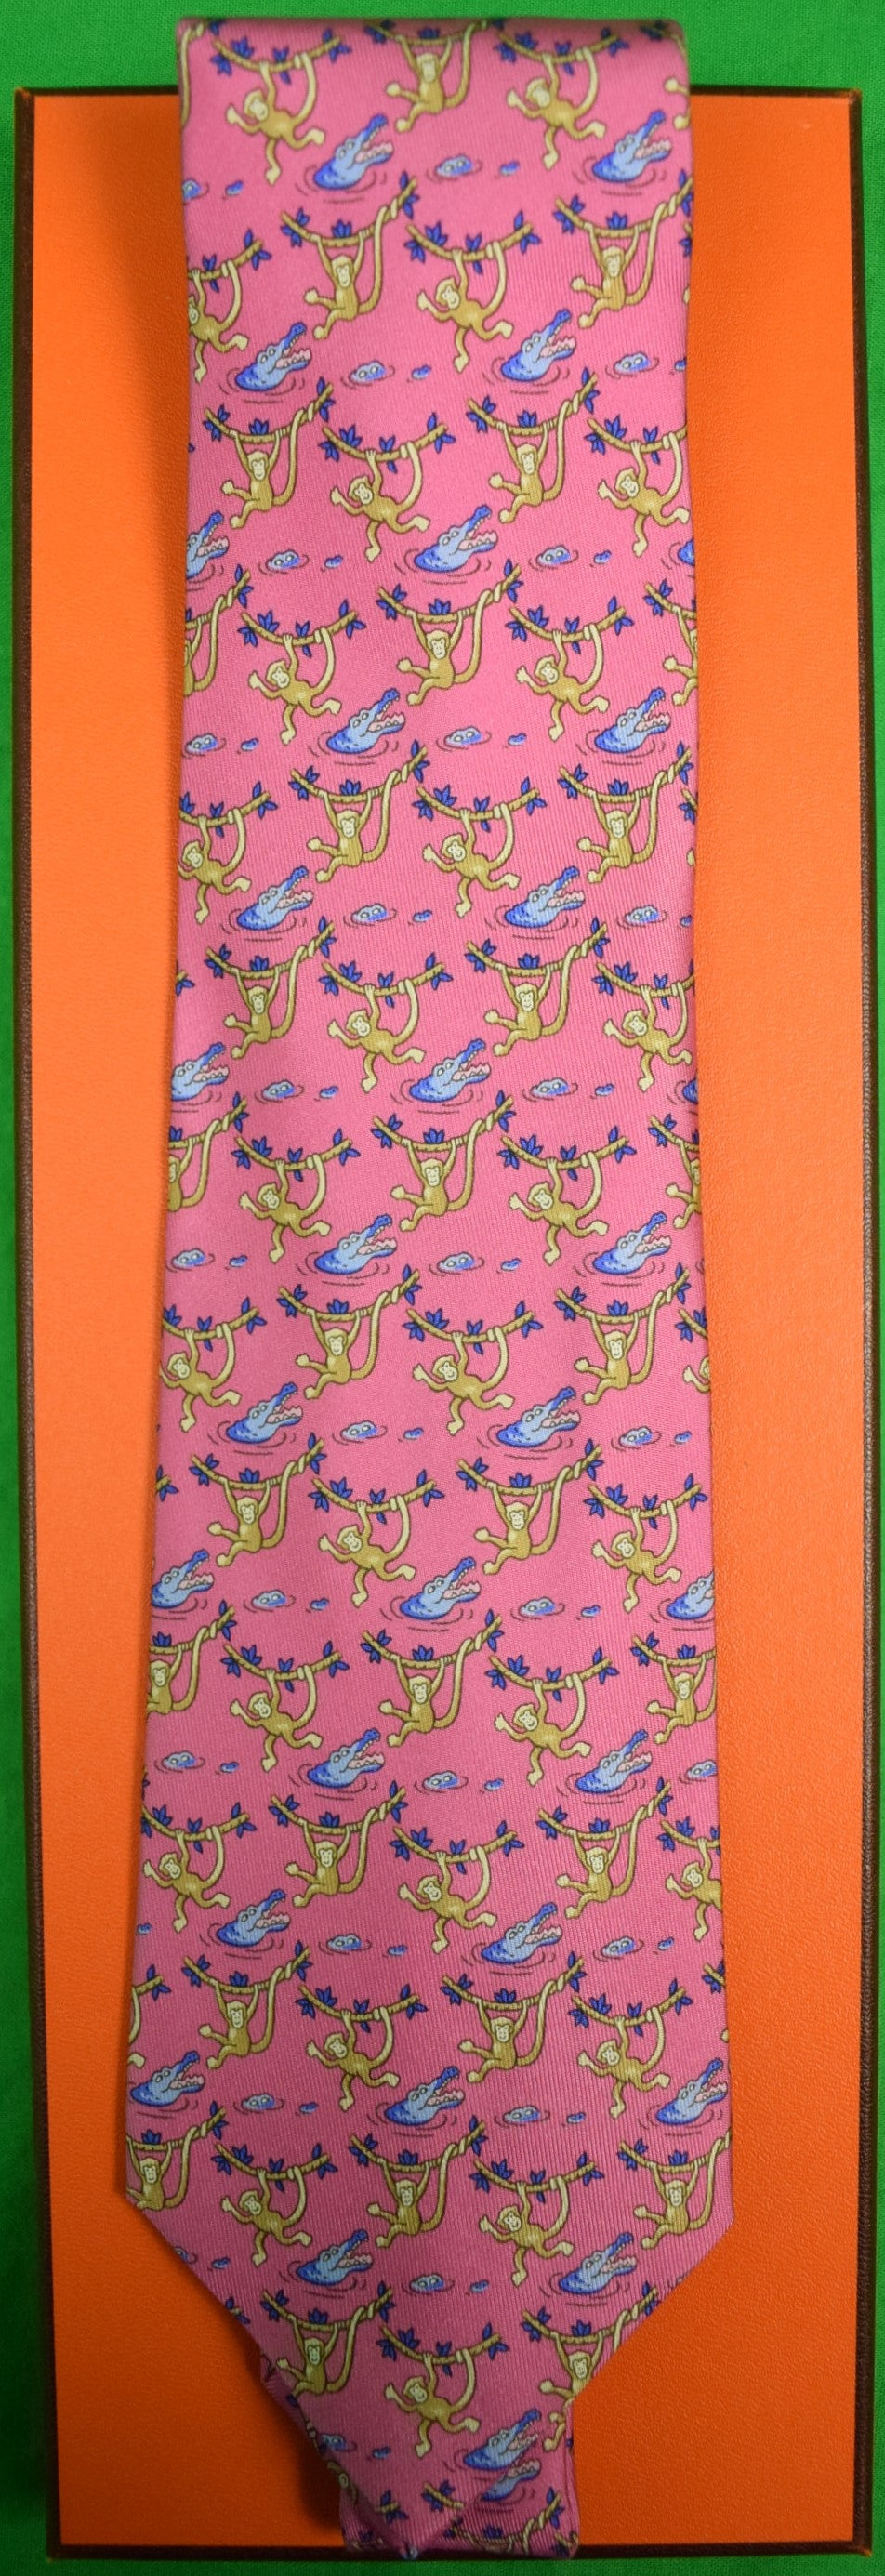 Hermes Paris Monkeys & Blue Alligators on Rose Silk Tie (New w/ Tag!)